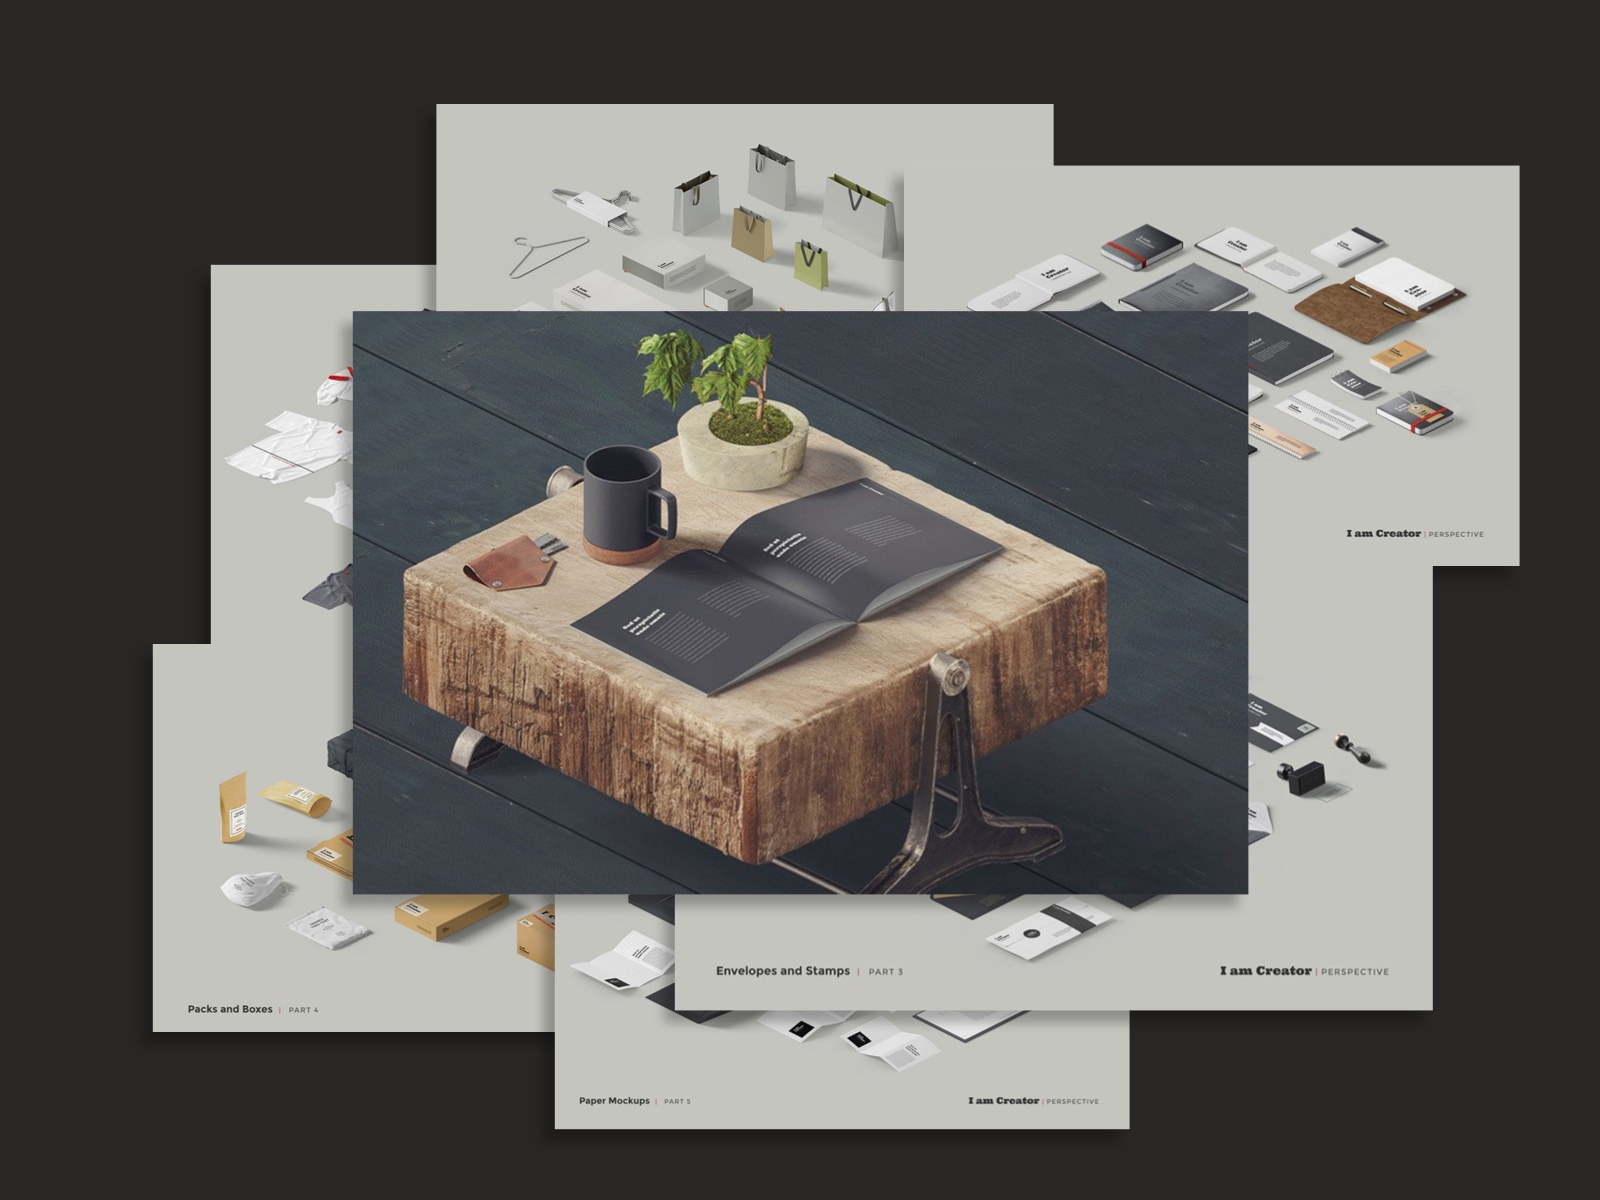 Multipurpose scene generator in Isometric